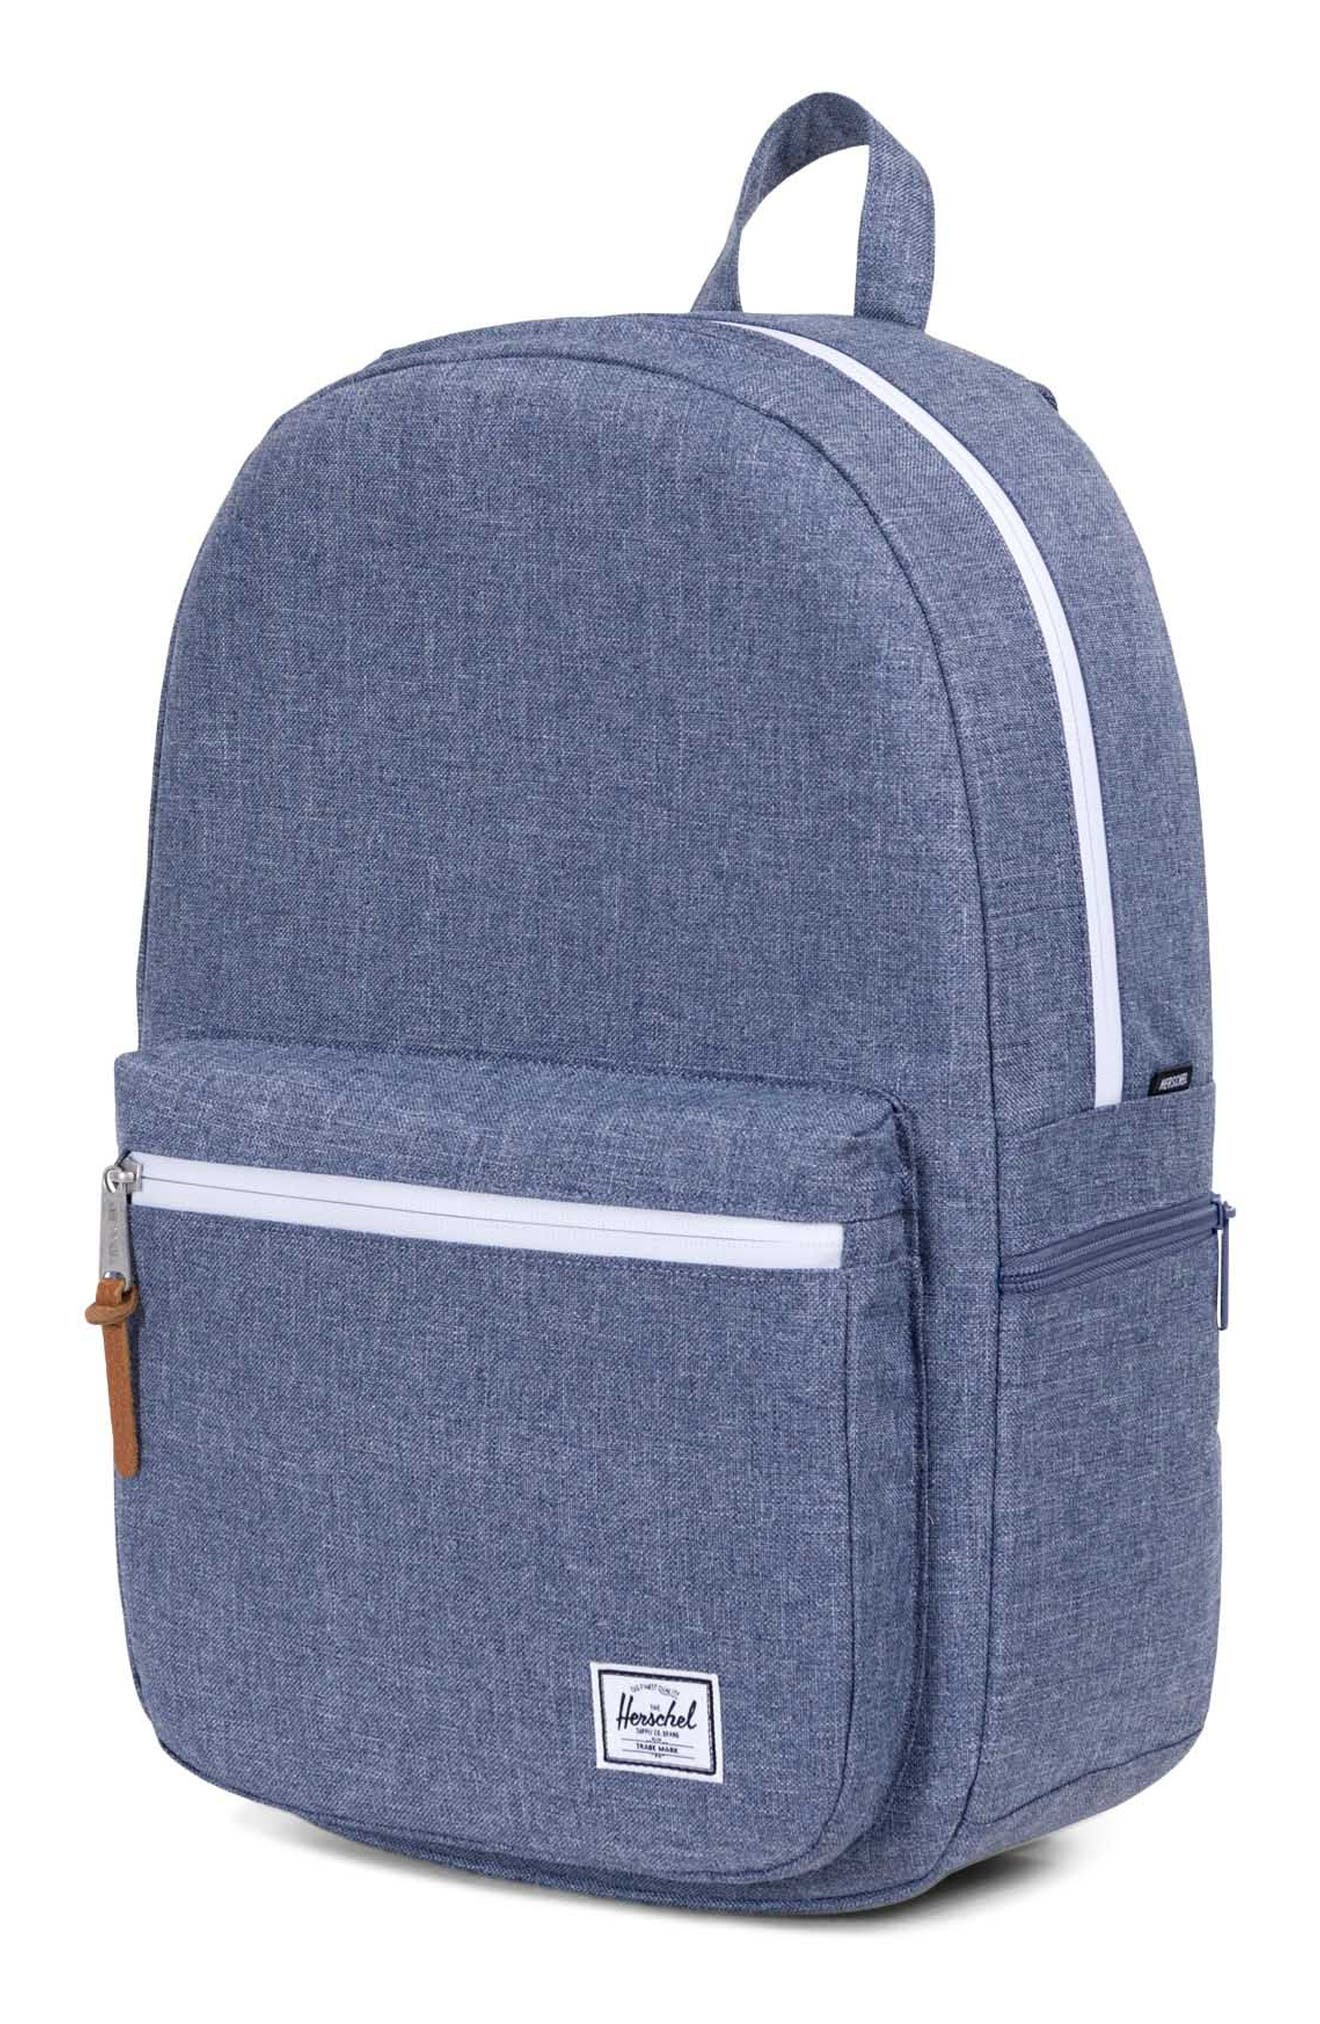 Harrison Backpack,                             Alternate thumbnail 4, color,                             Dark Chambray Crosshatch